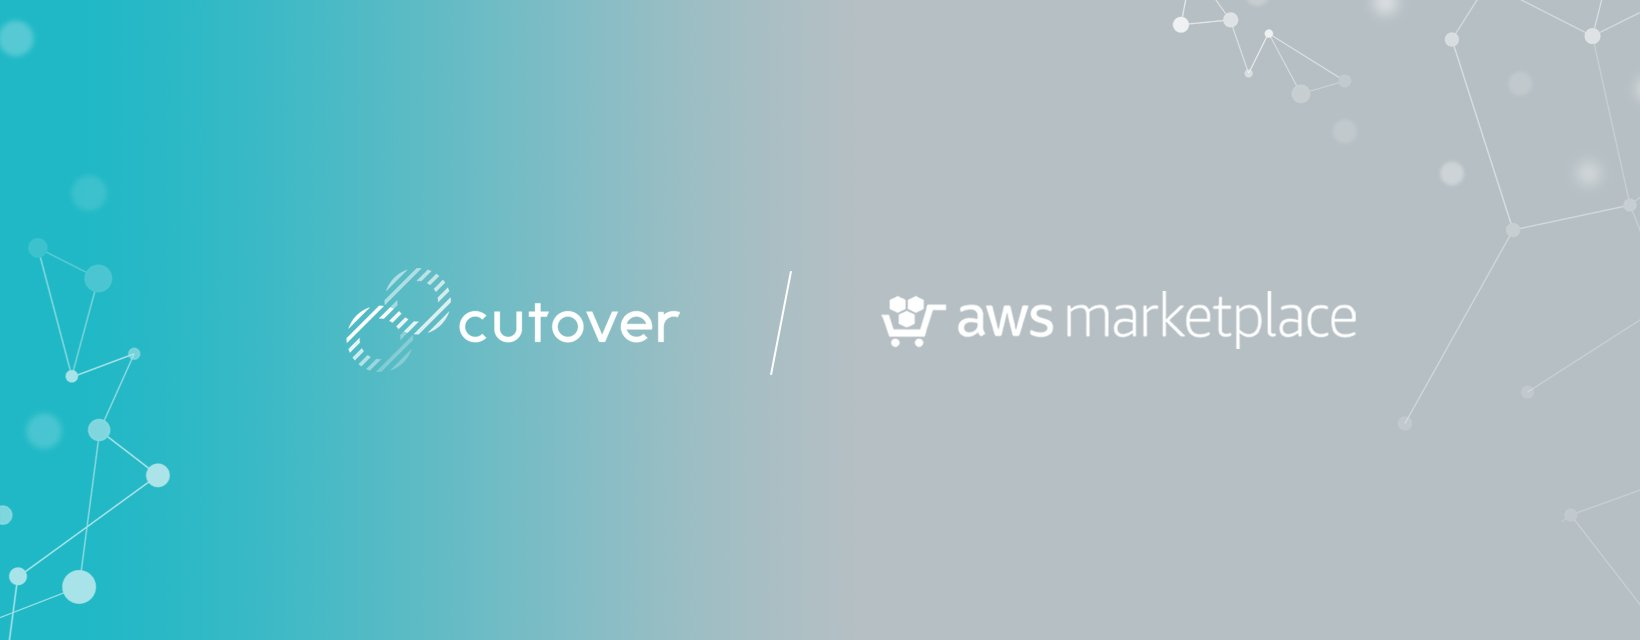 How to get Cutover on the AWS Marketplace